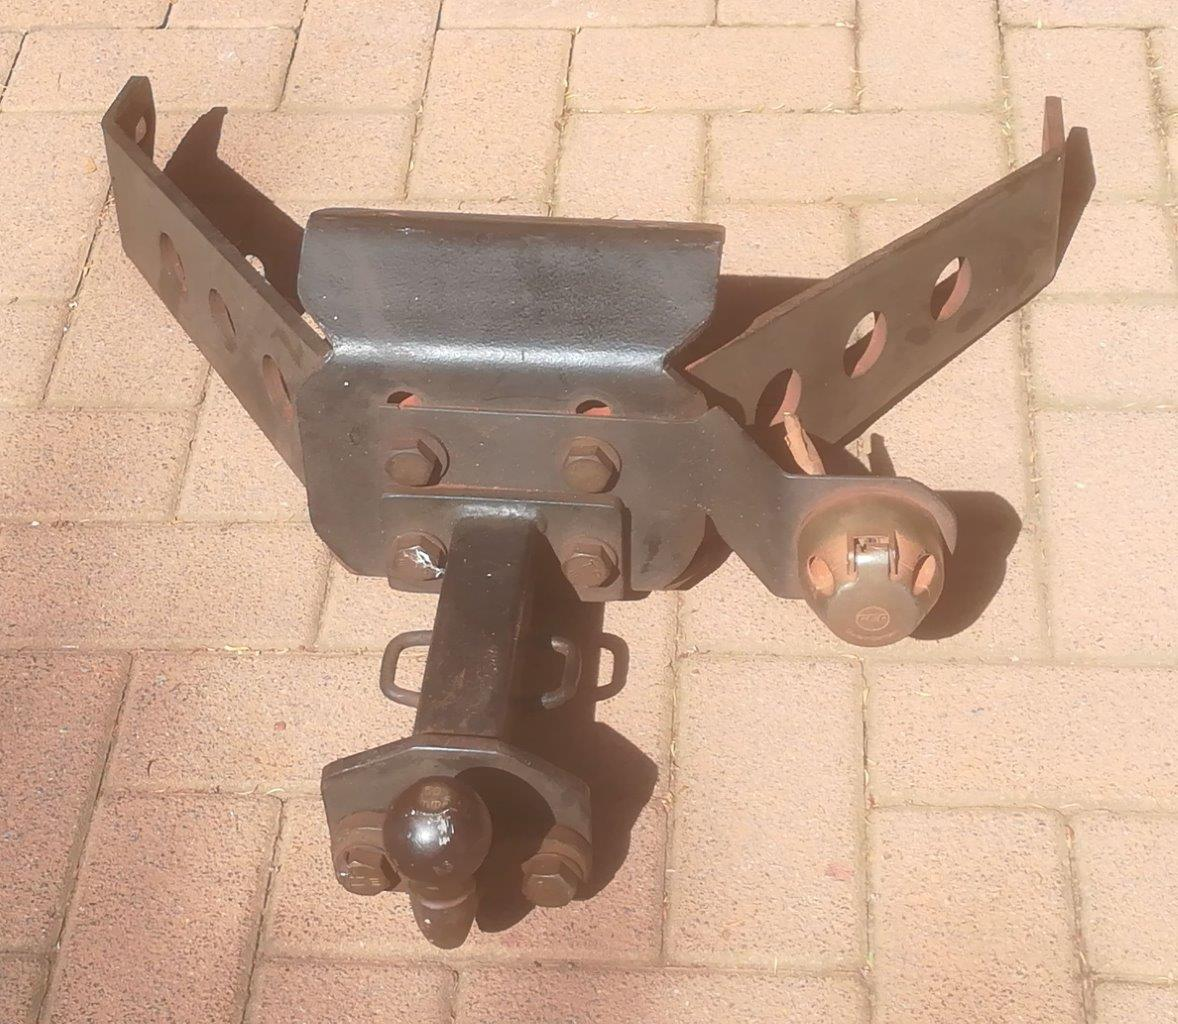 LR Defender towbar assembly